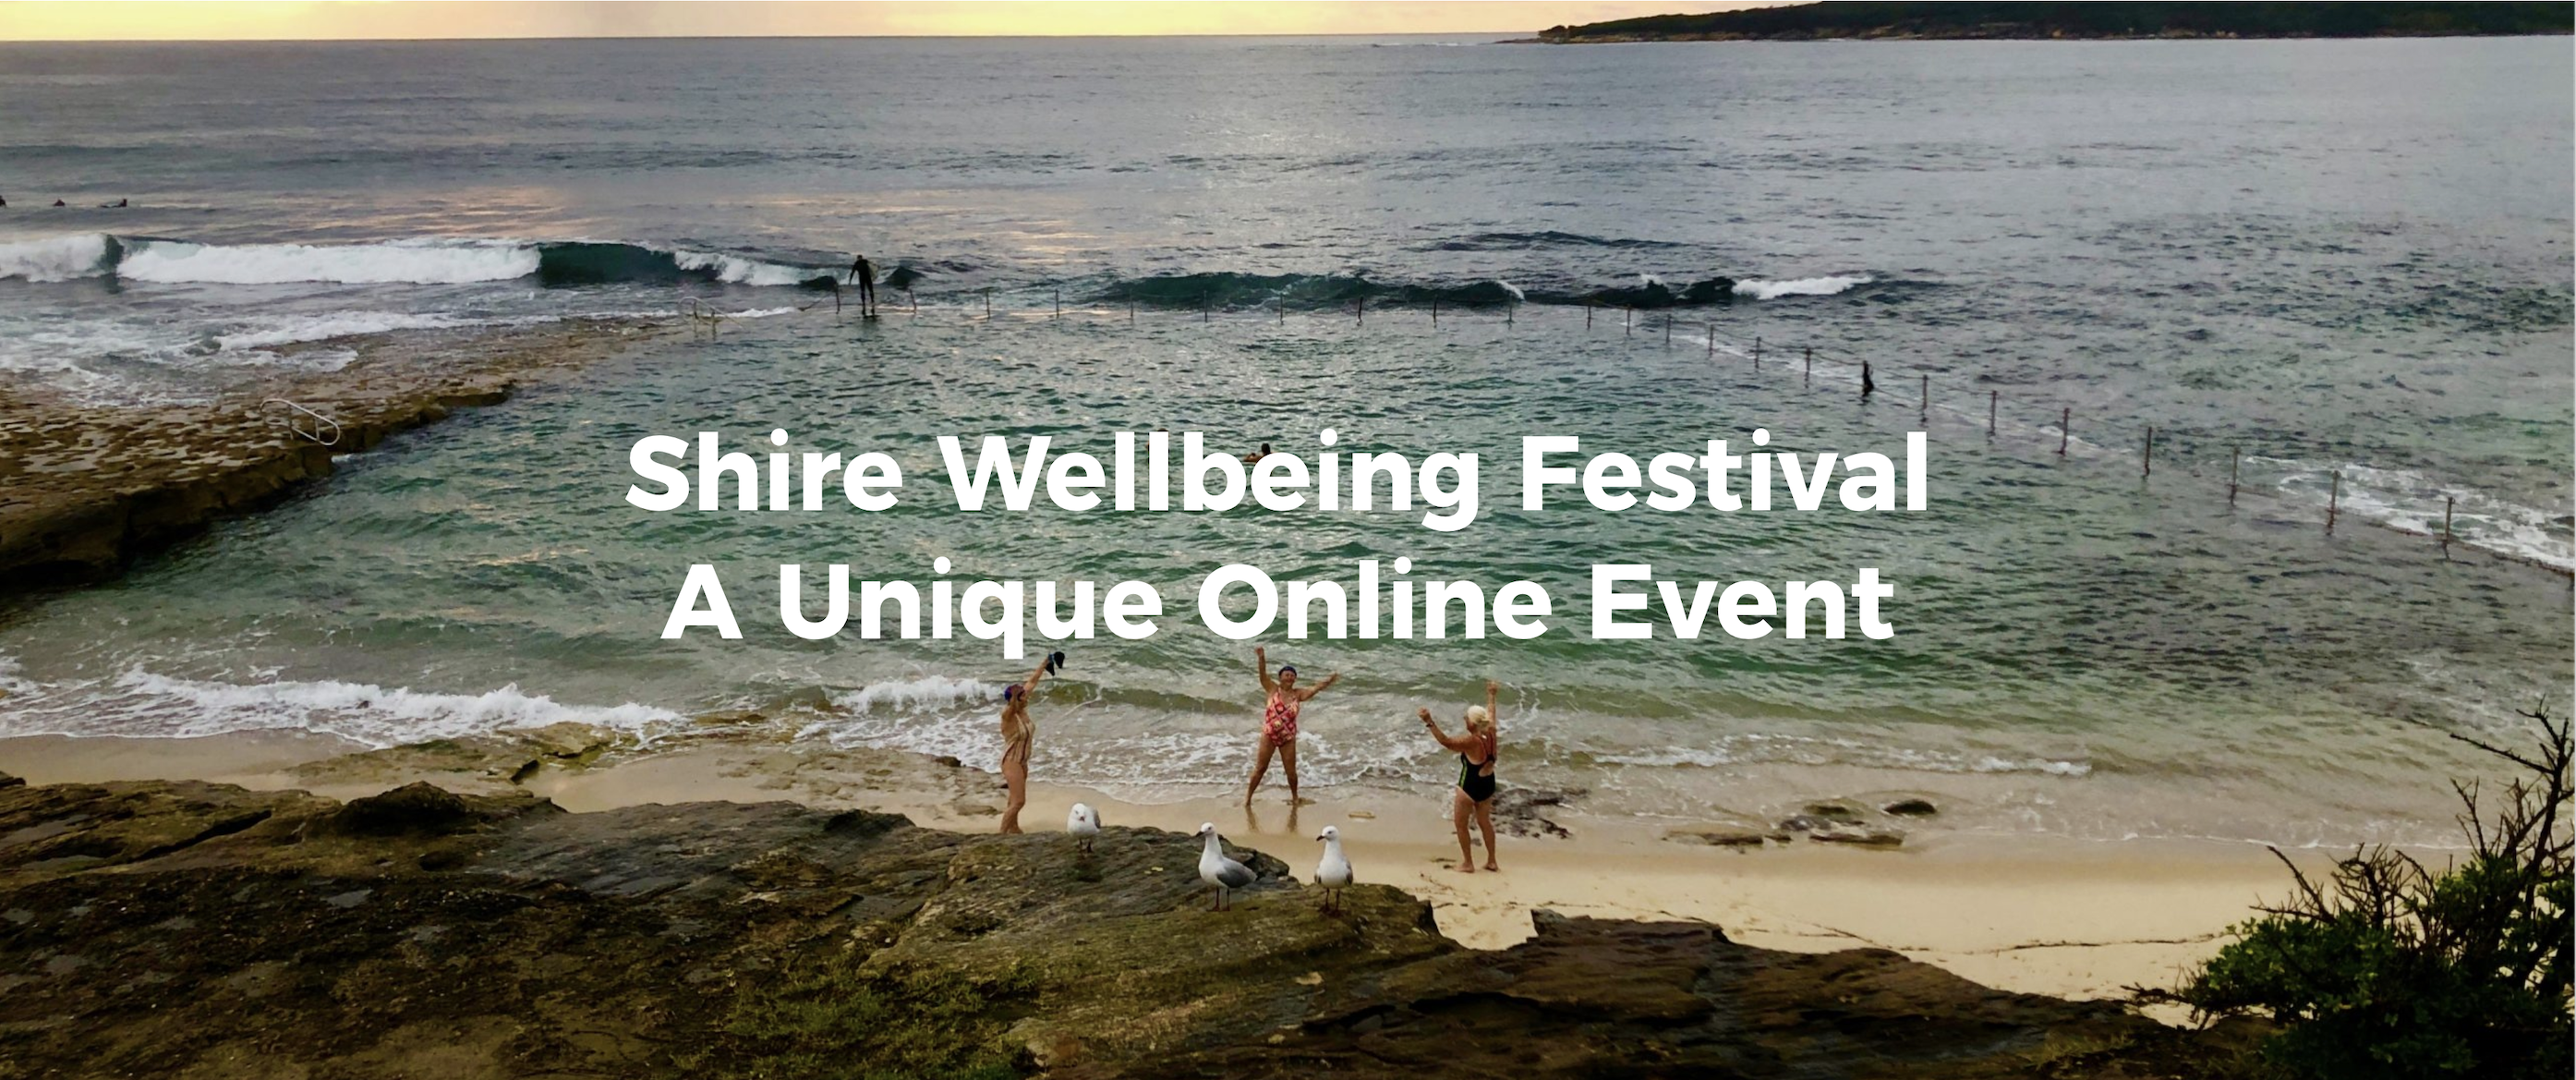 Shire Wellbeing Festival